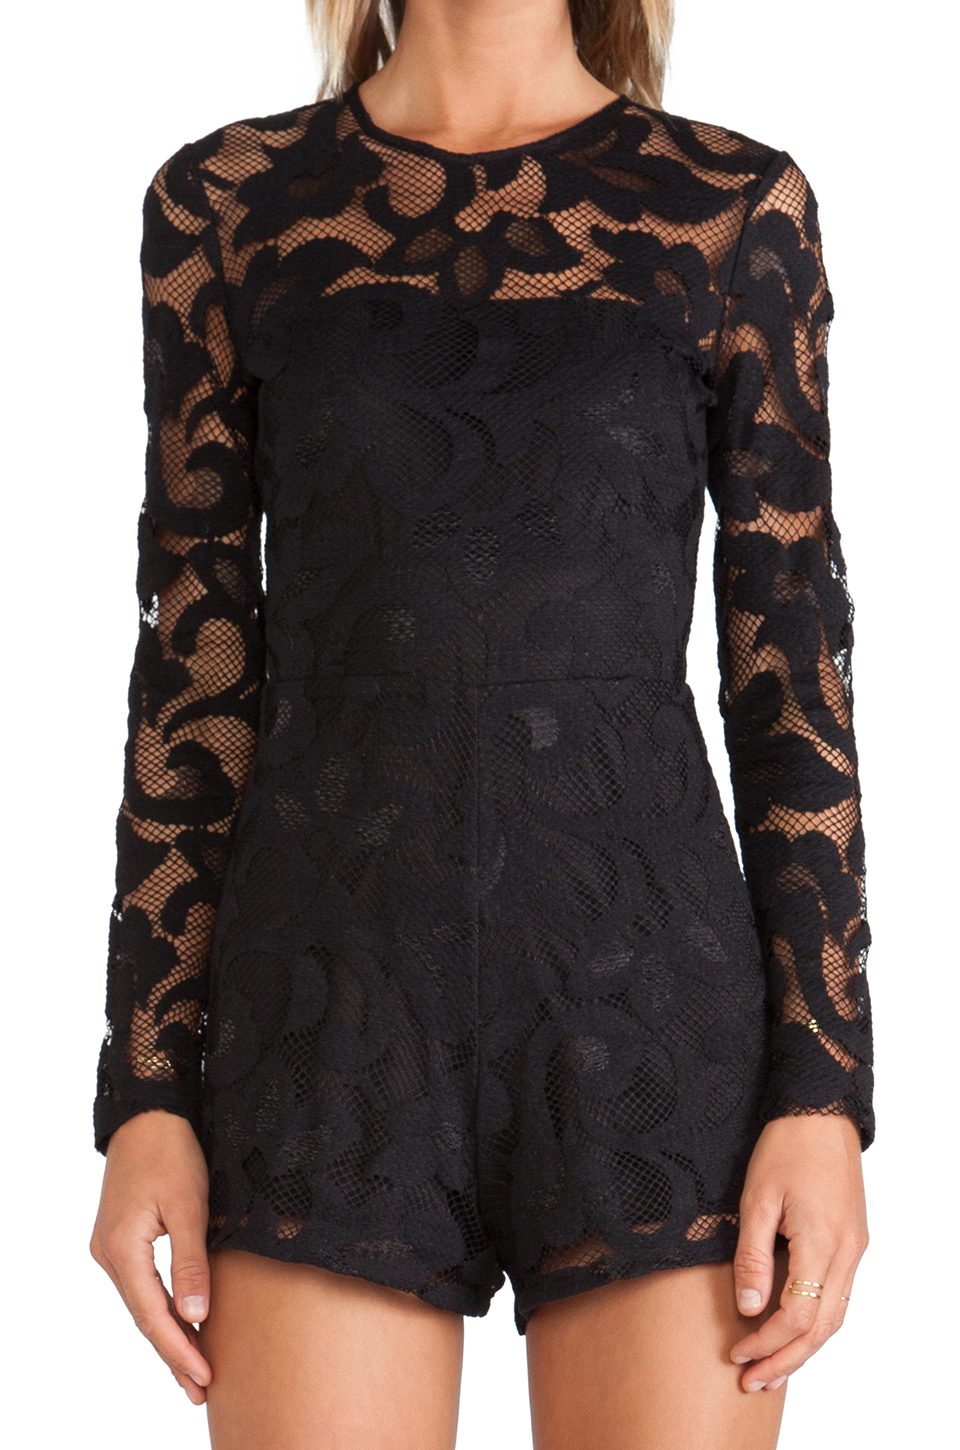 Alexis montreuil lace romper in black from revolveclothing.com